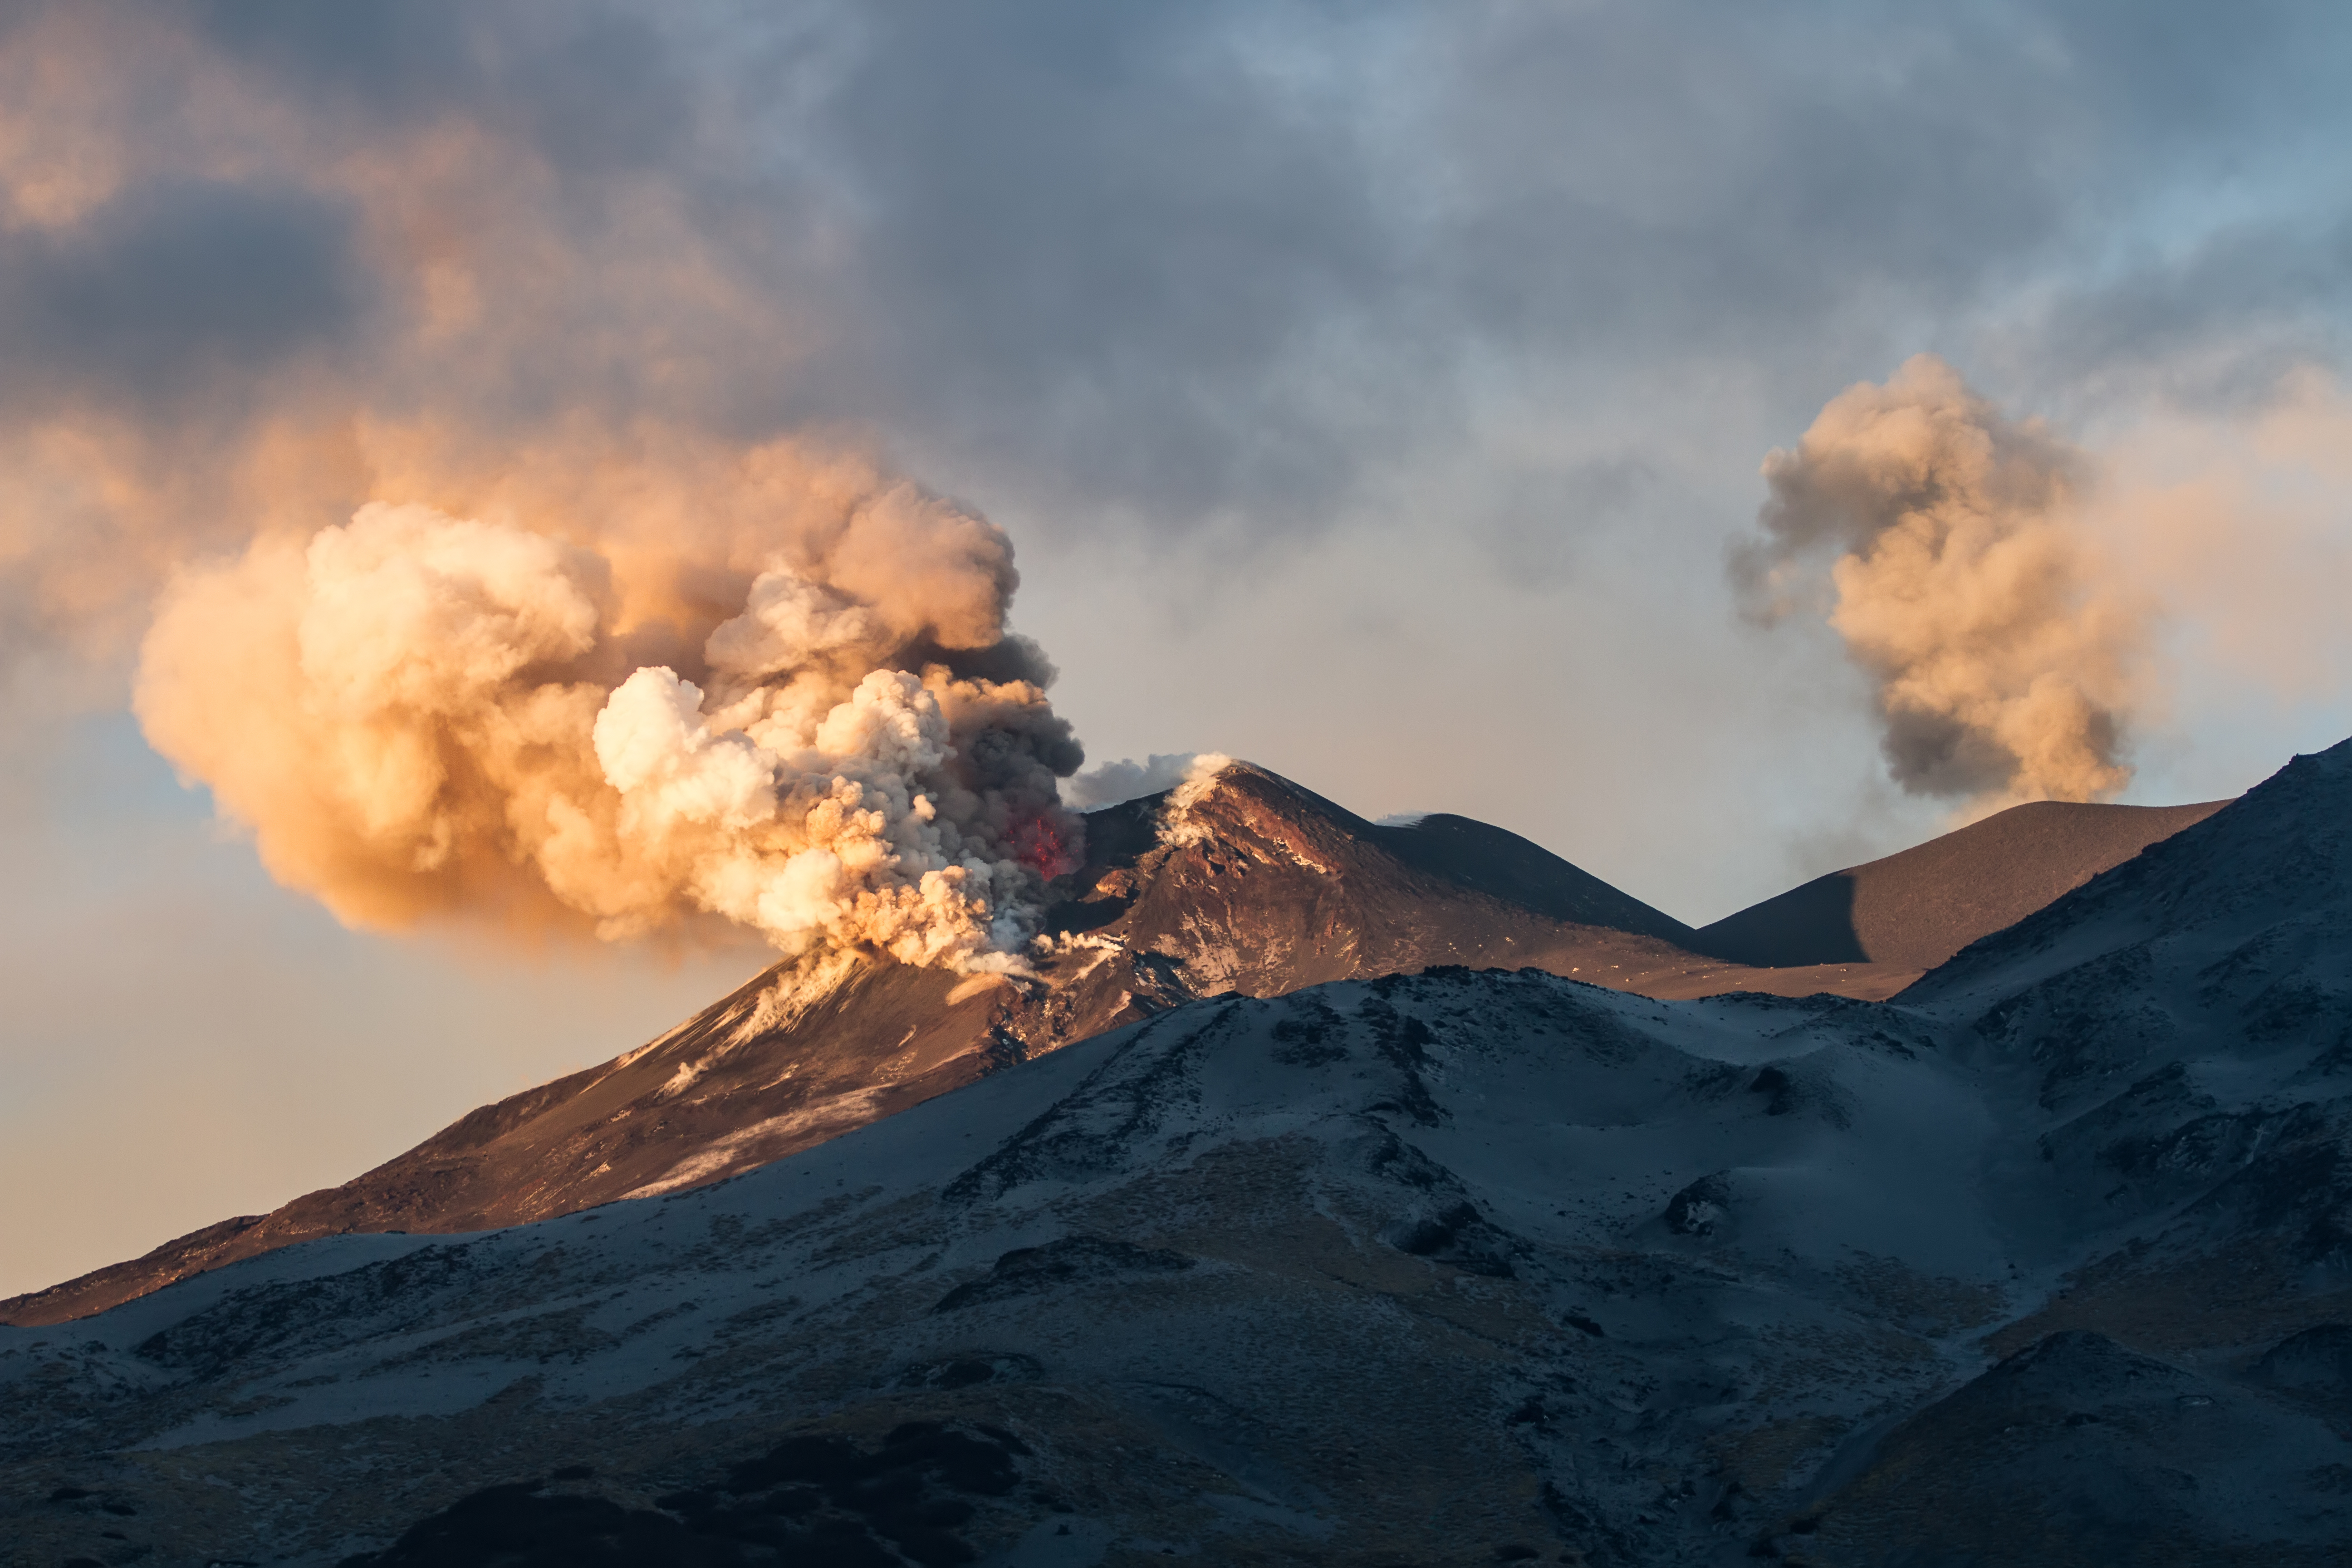 Scientists predict volcanic eruptions with satellites and GPS